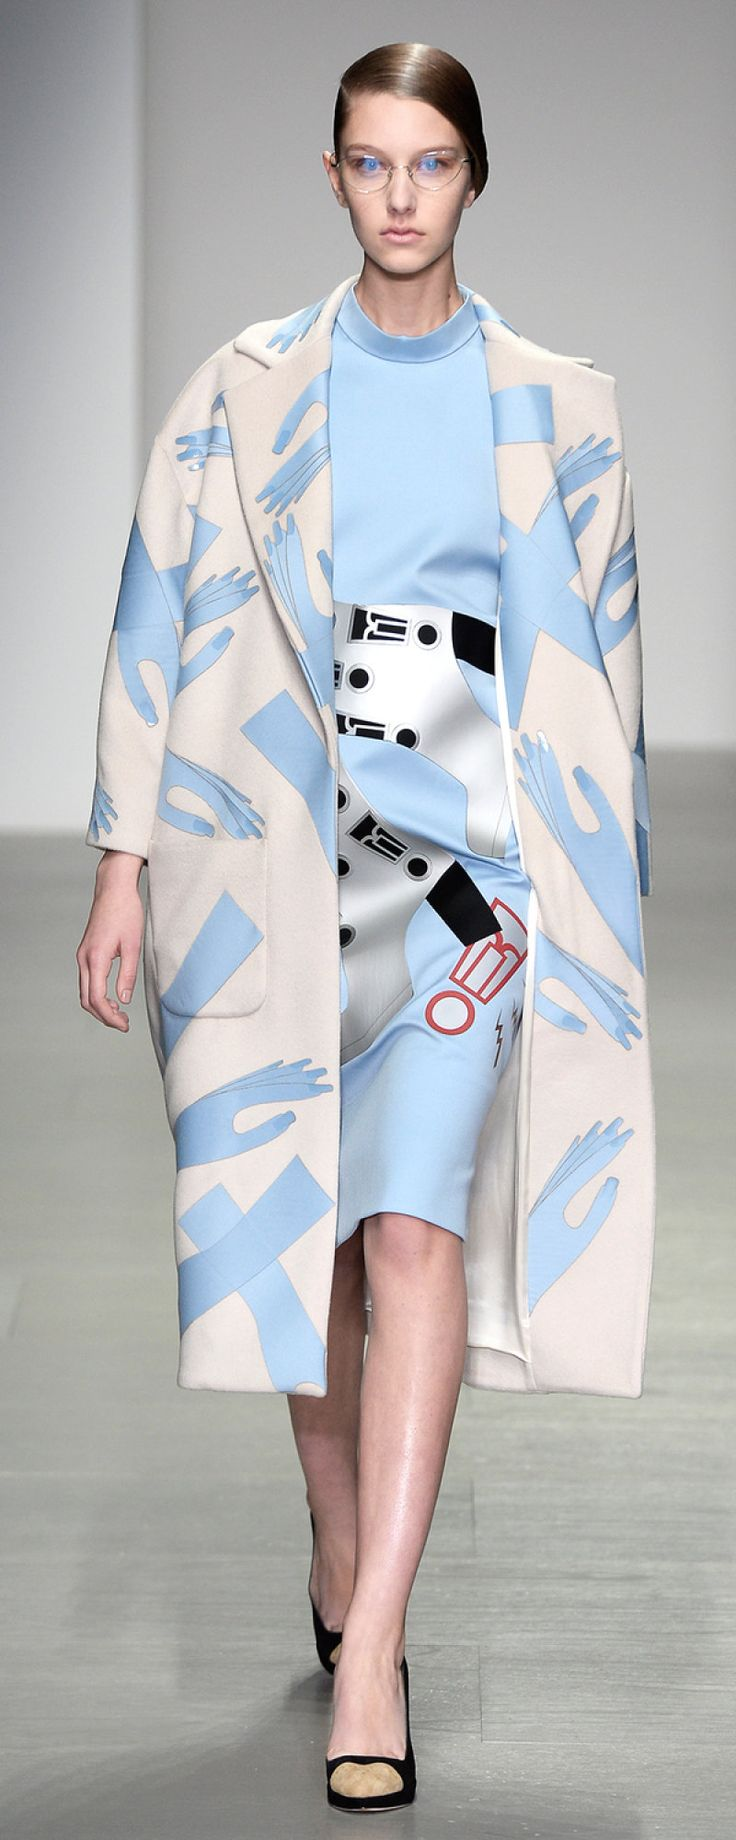 A/W 2014 Coat by Holly Fulton #fashion